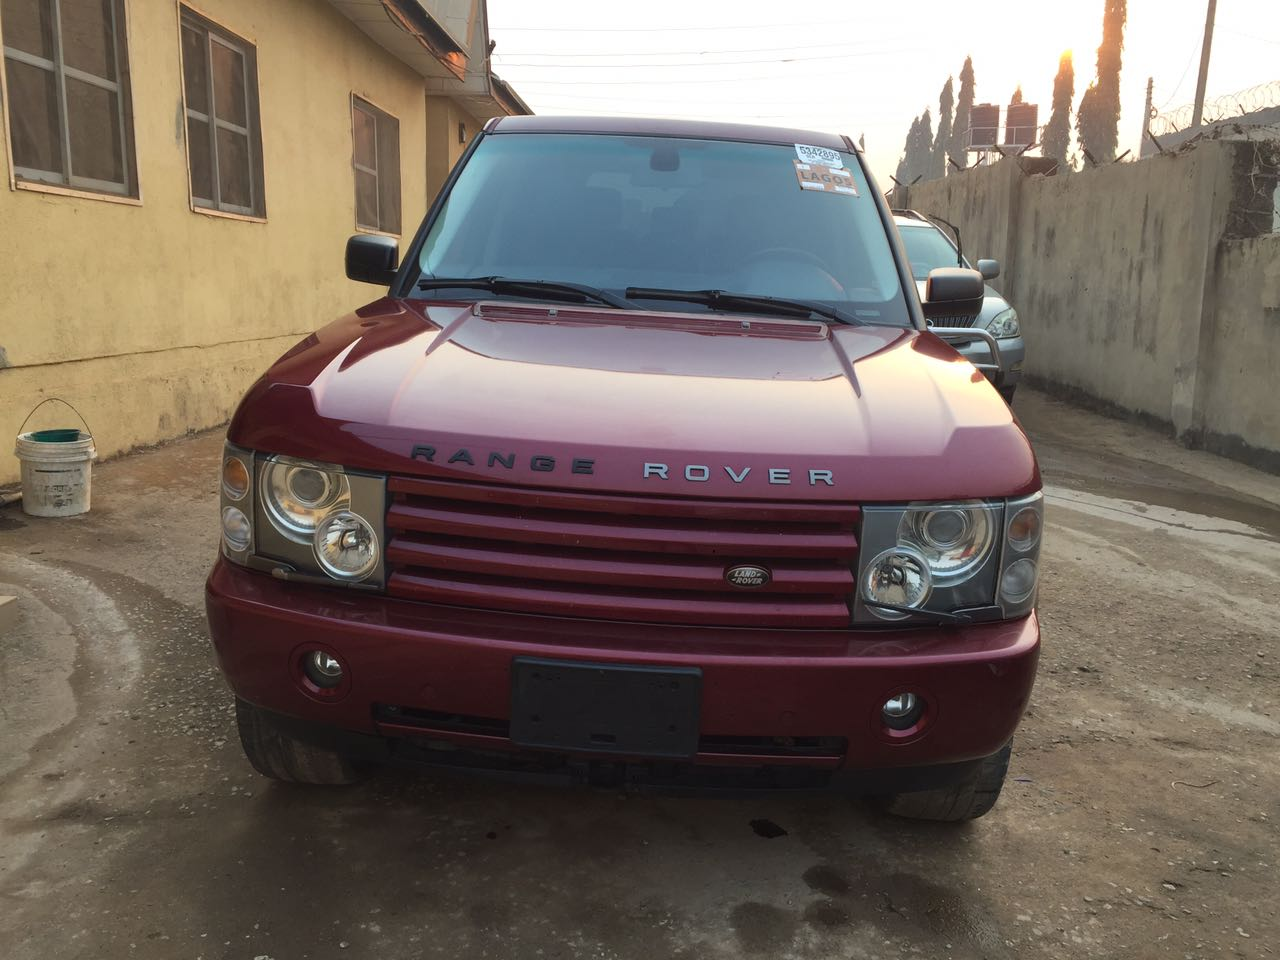 2005 range rover hse lagos cleared price reduction autos nigeria. Black Bedroom Furniture Sets. Home Design Ideas